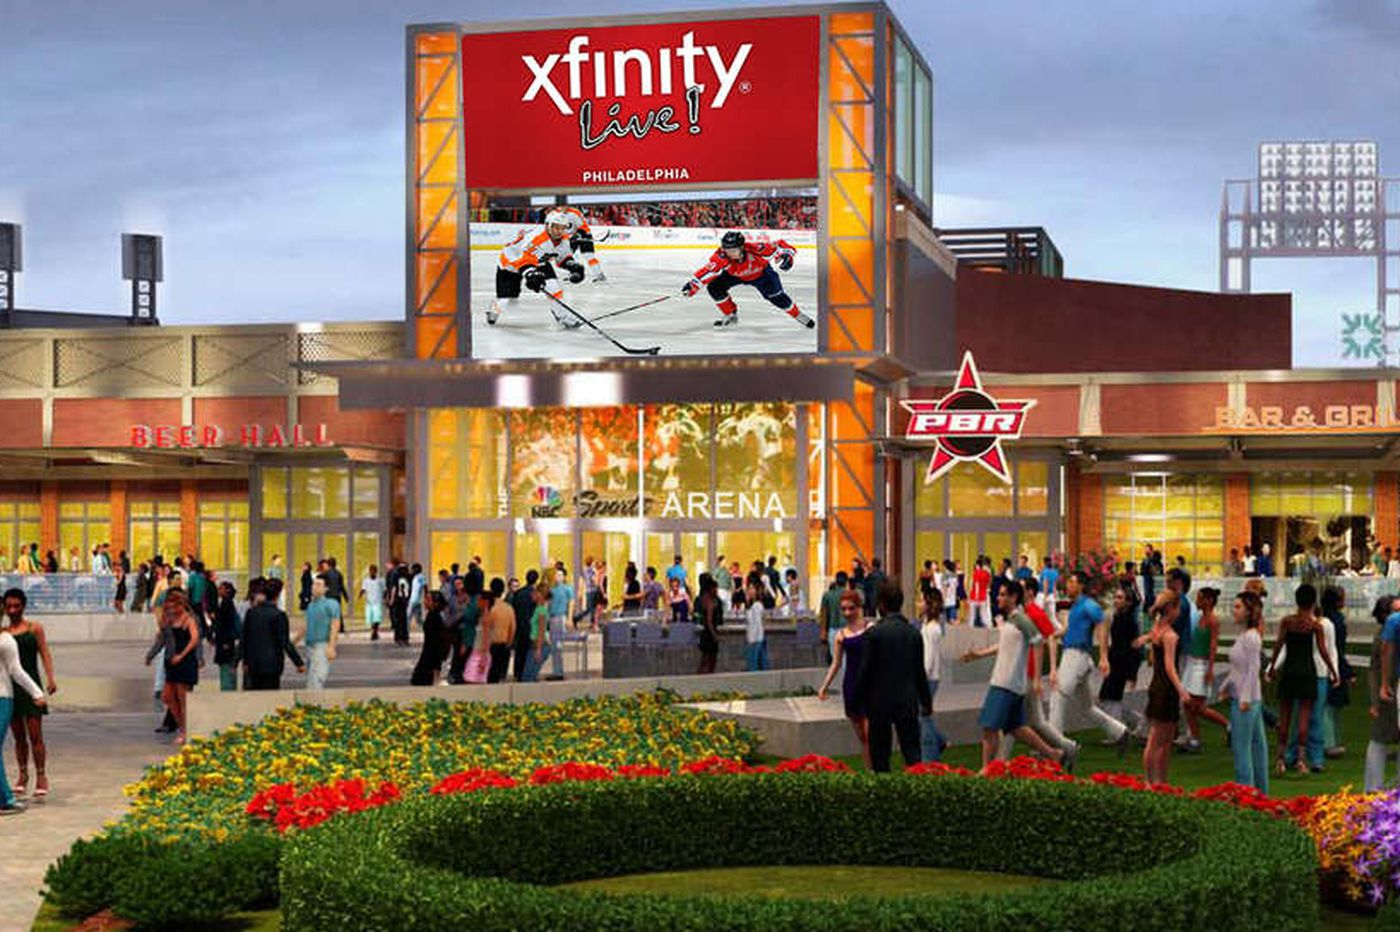 XFINITY Live! grand opening set for April 5